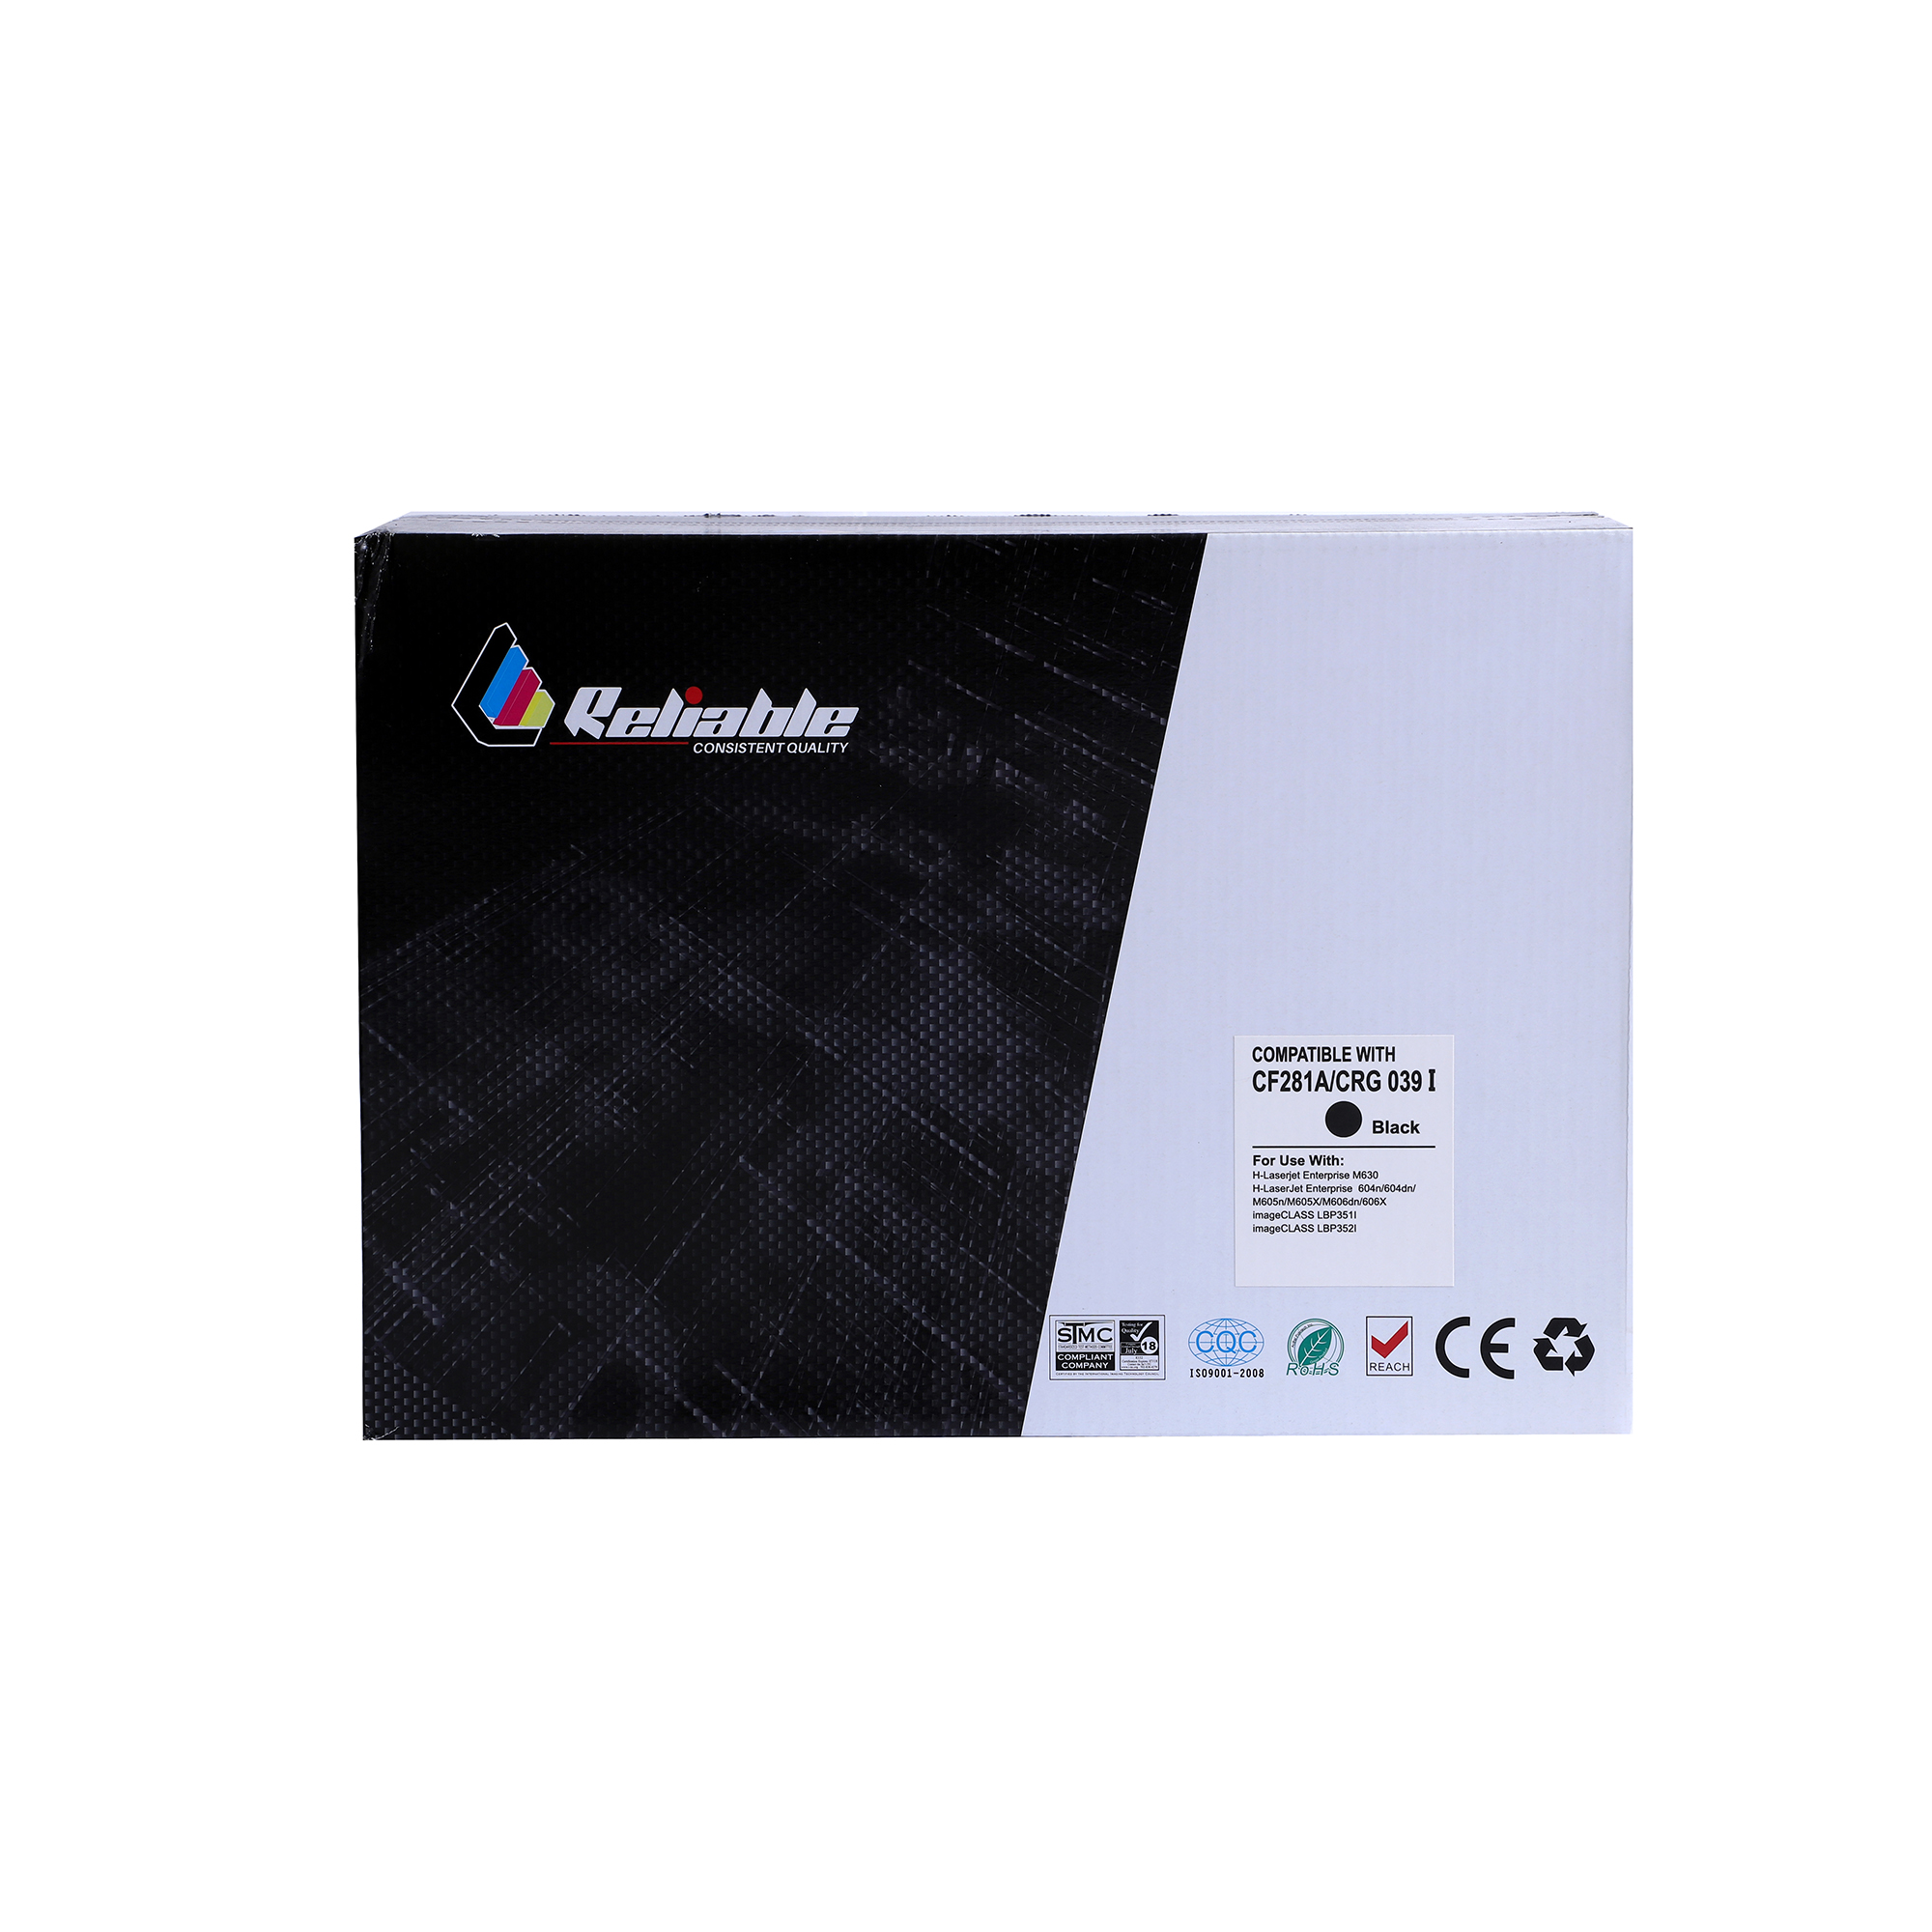 Reliable 81A (CF281A) / 0391 Compatible Toner Cartridge - Black